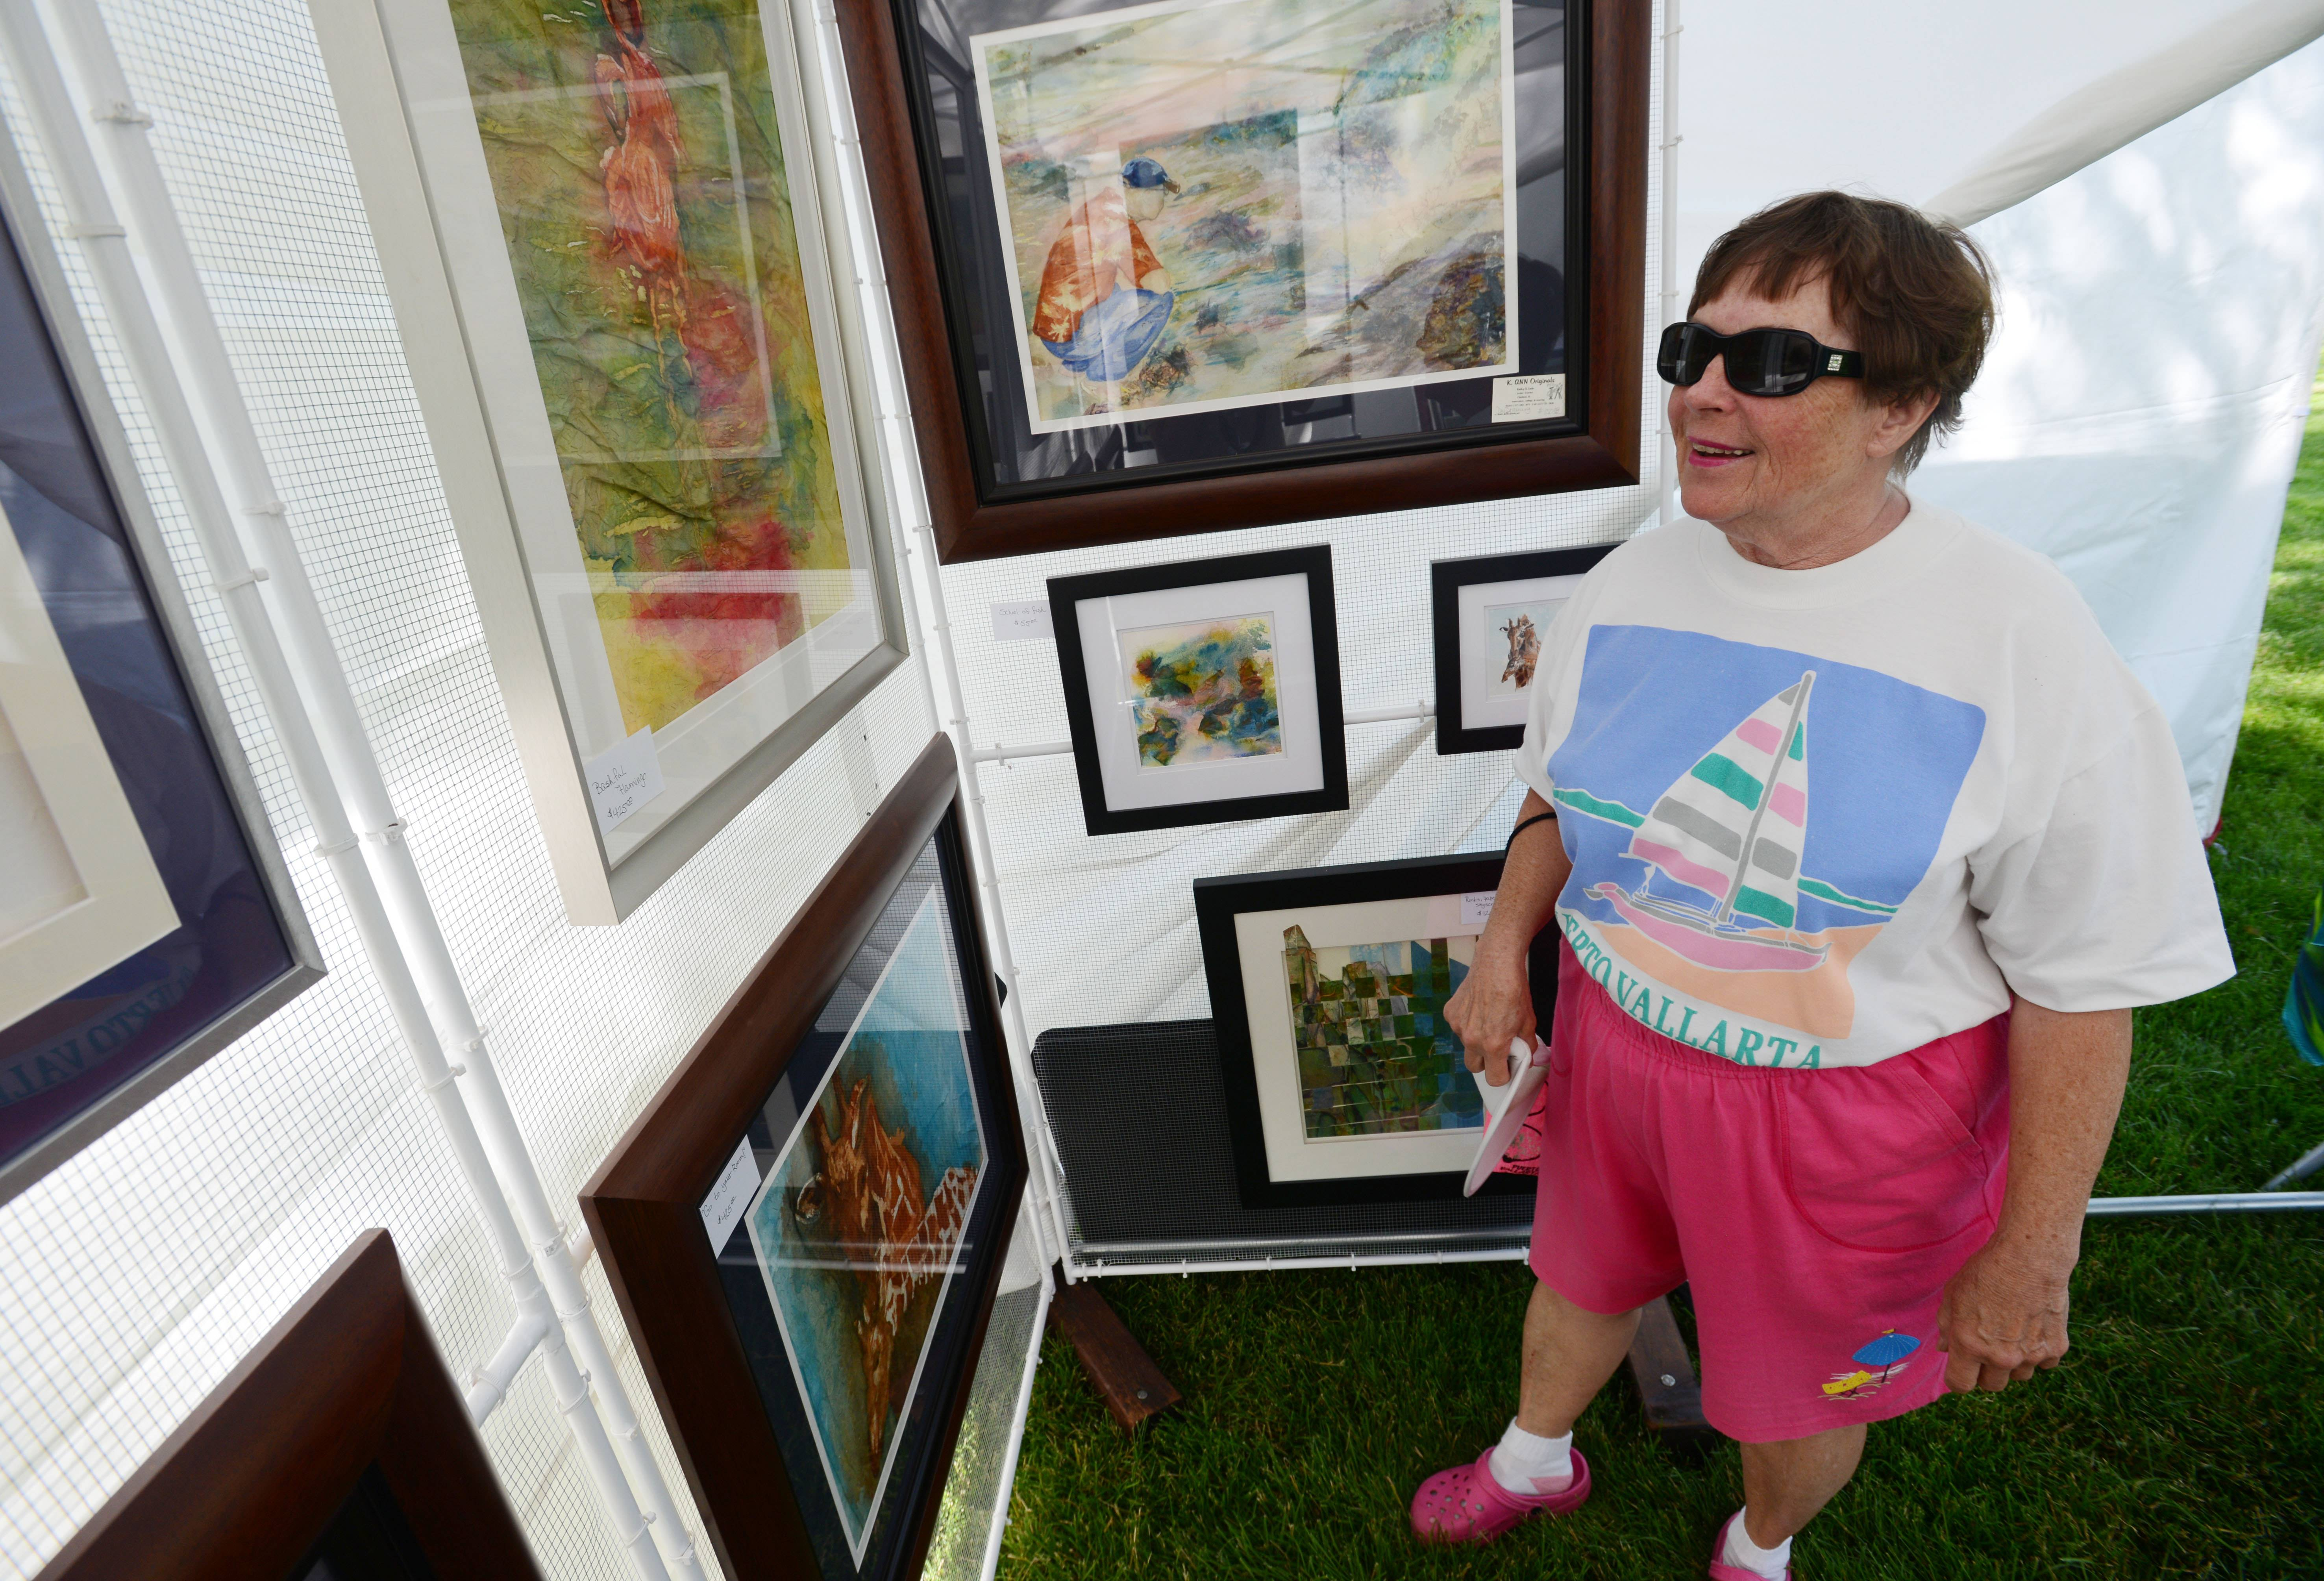 Carol Veto of South Barrington looks at the art of Kathy Lesle of Chatham, Ill. The Art in Bloom festival ran from 10 a.m. to 5 p.m. Saturday and 10 a.m. to 4 p.m. Sunday at Cantigny Park in Wheaton